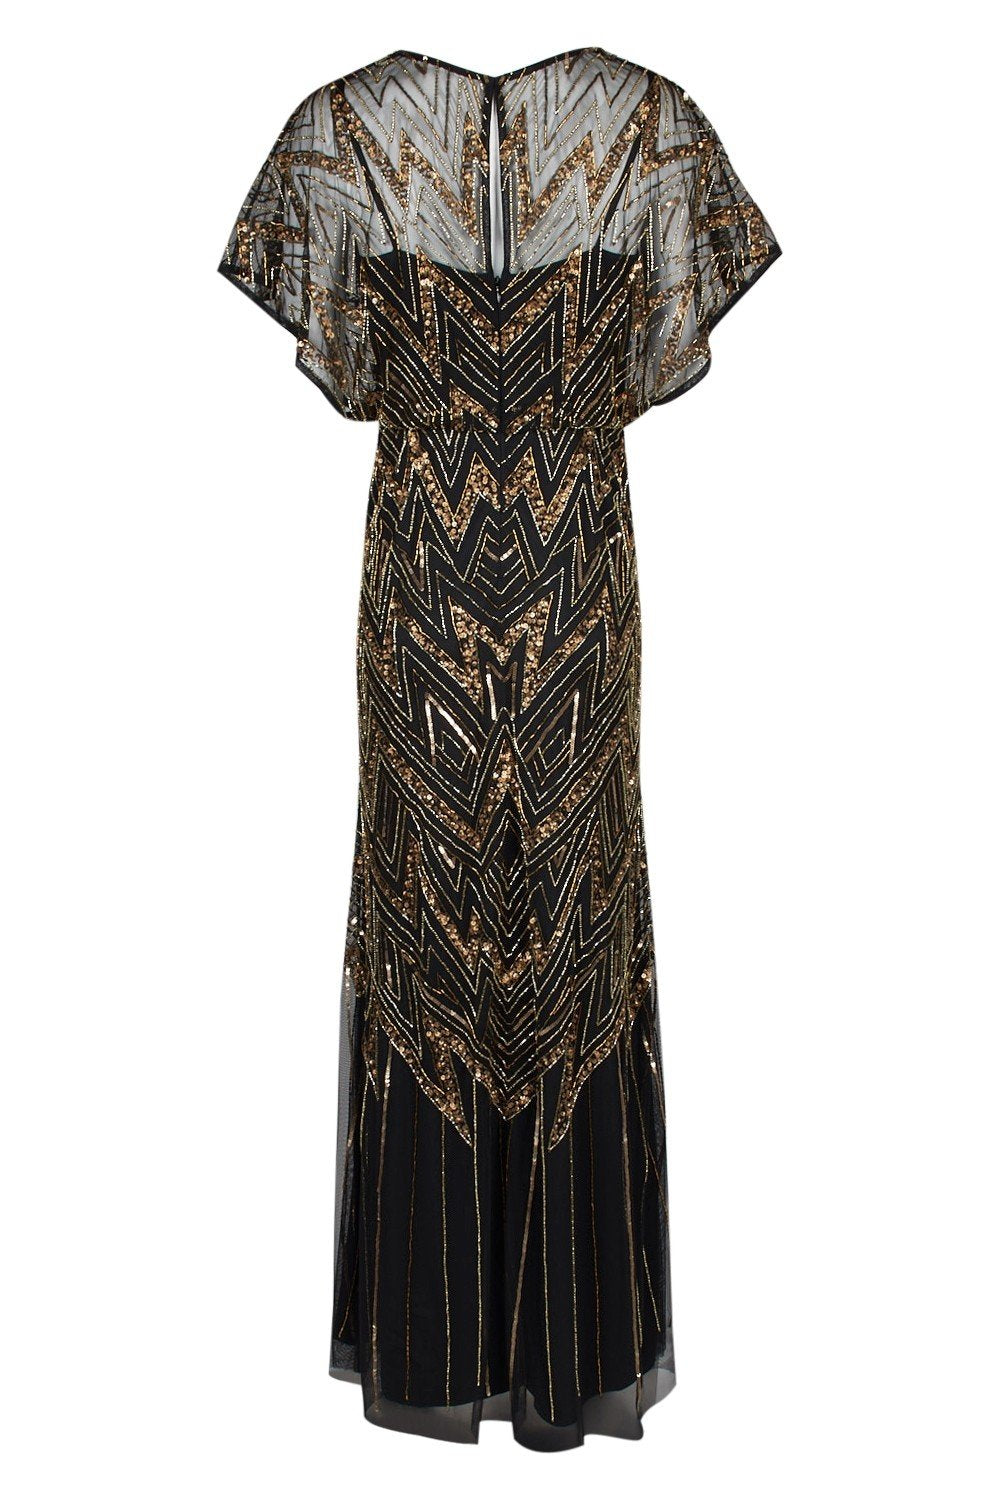 Aidan Mattox - MD1E203484 Embellished V-neck Sheath Dress In Gold and Black